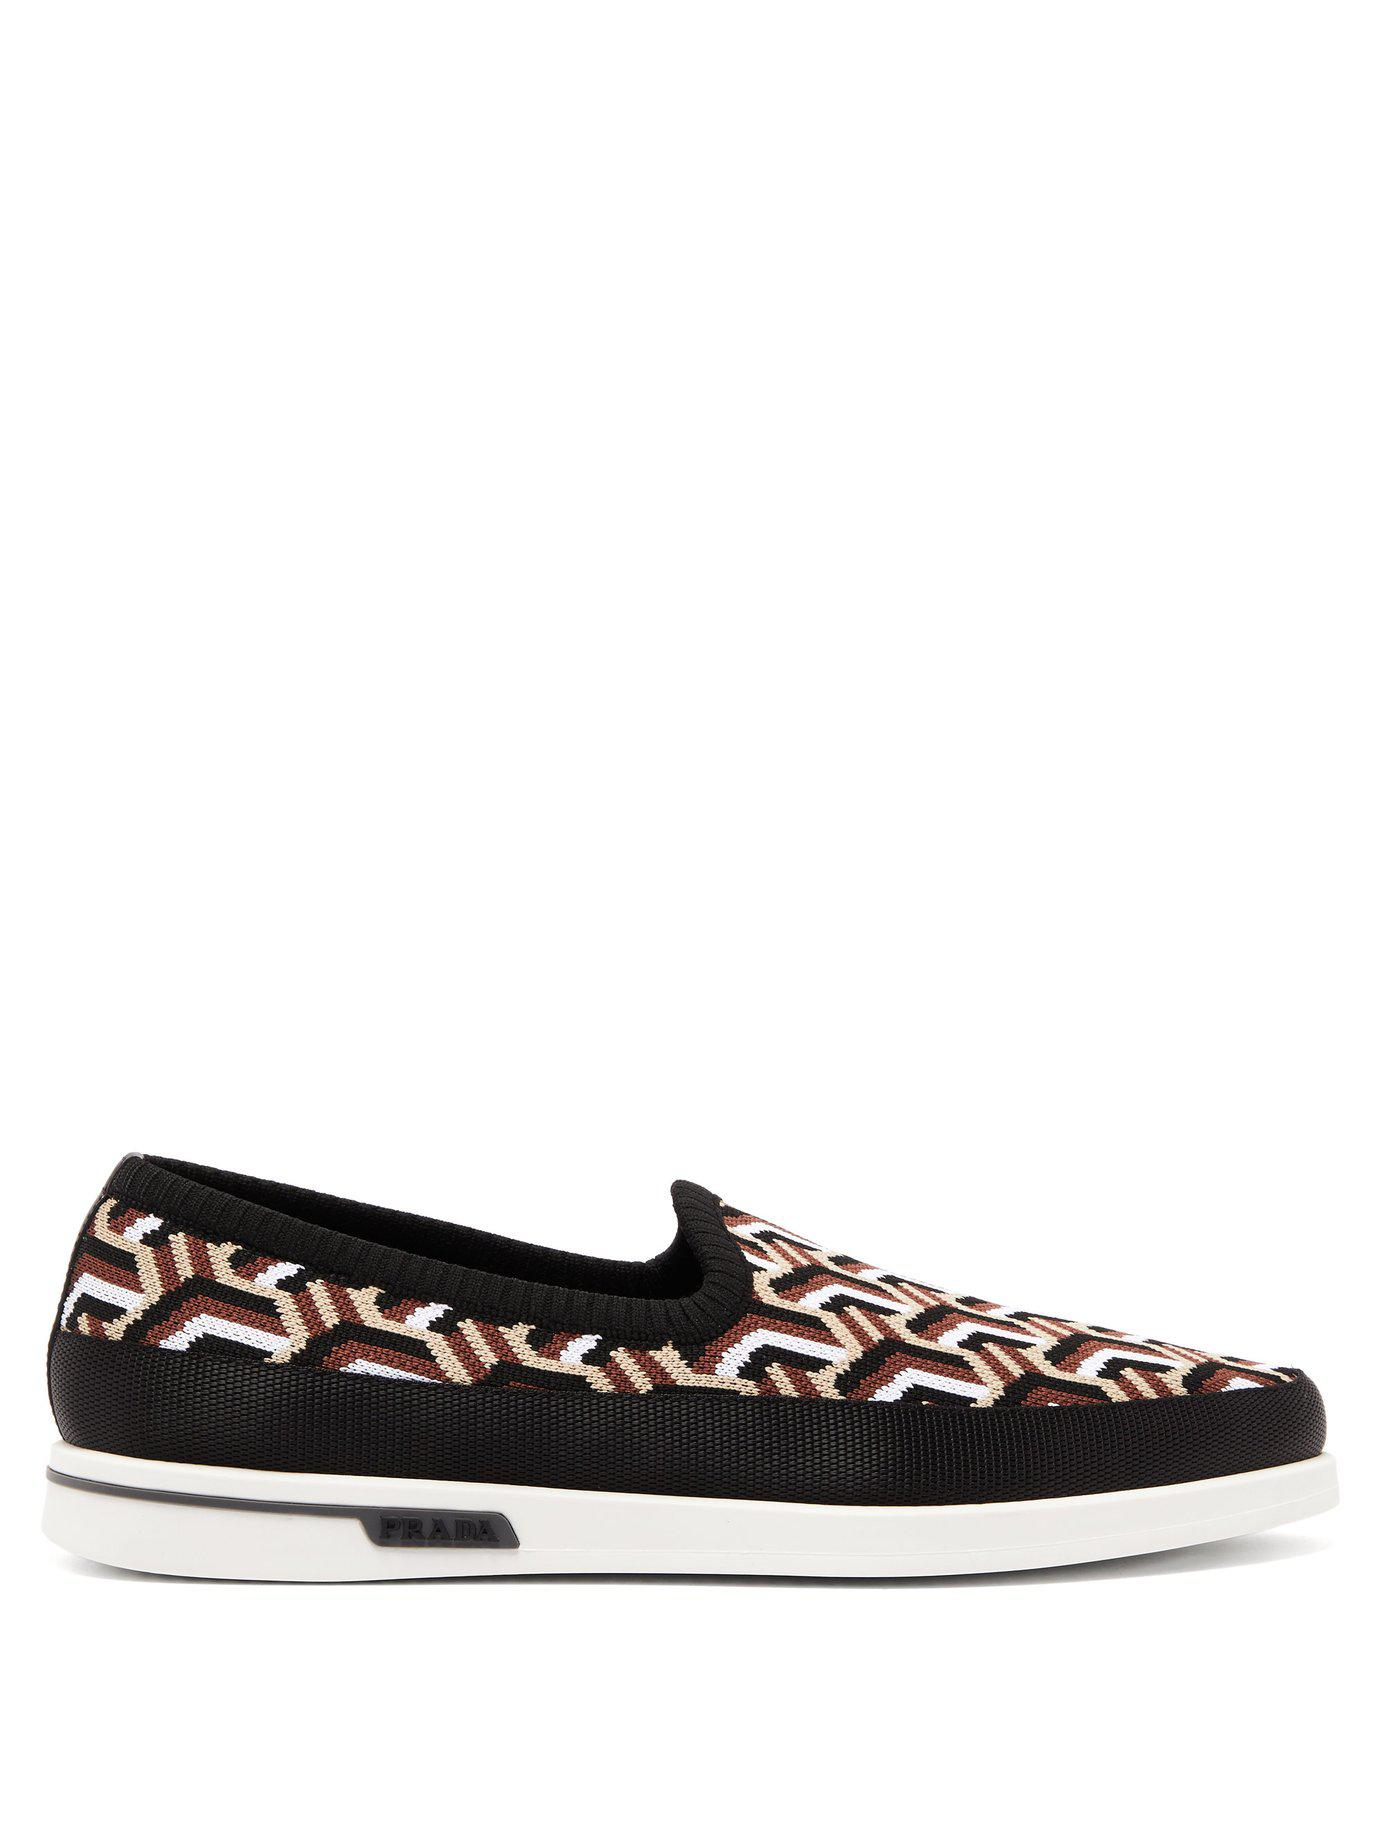 b4ff6769334 Lyst - Prada St Tropez Jacquard Knitted Loafers in Black for Men